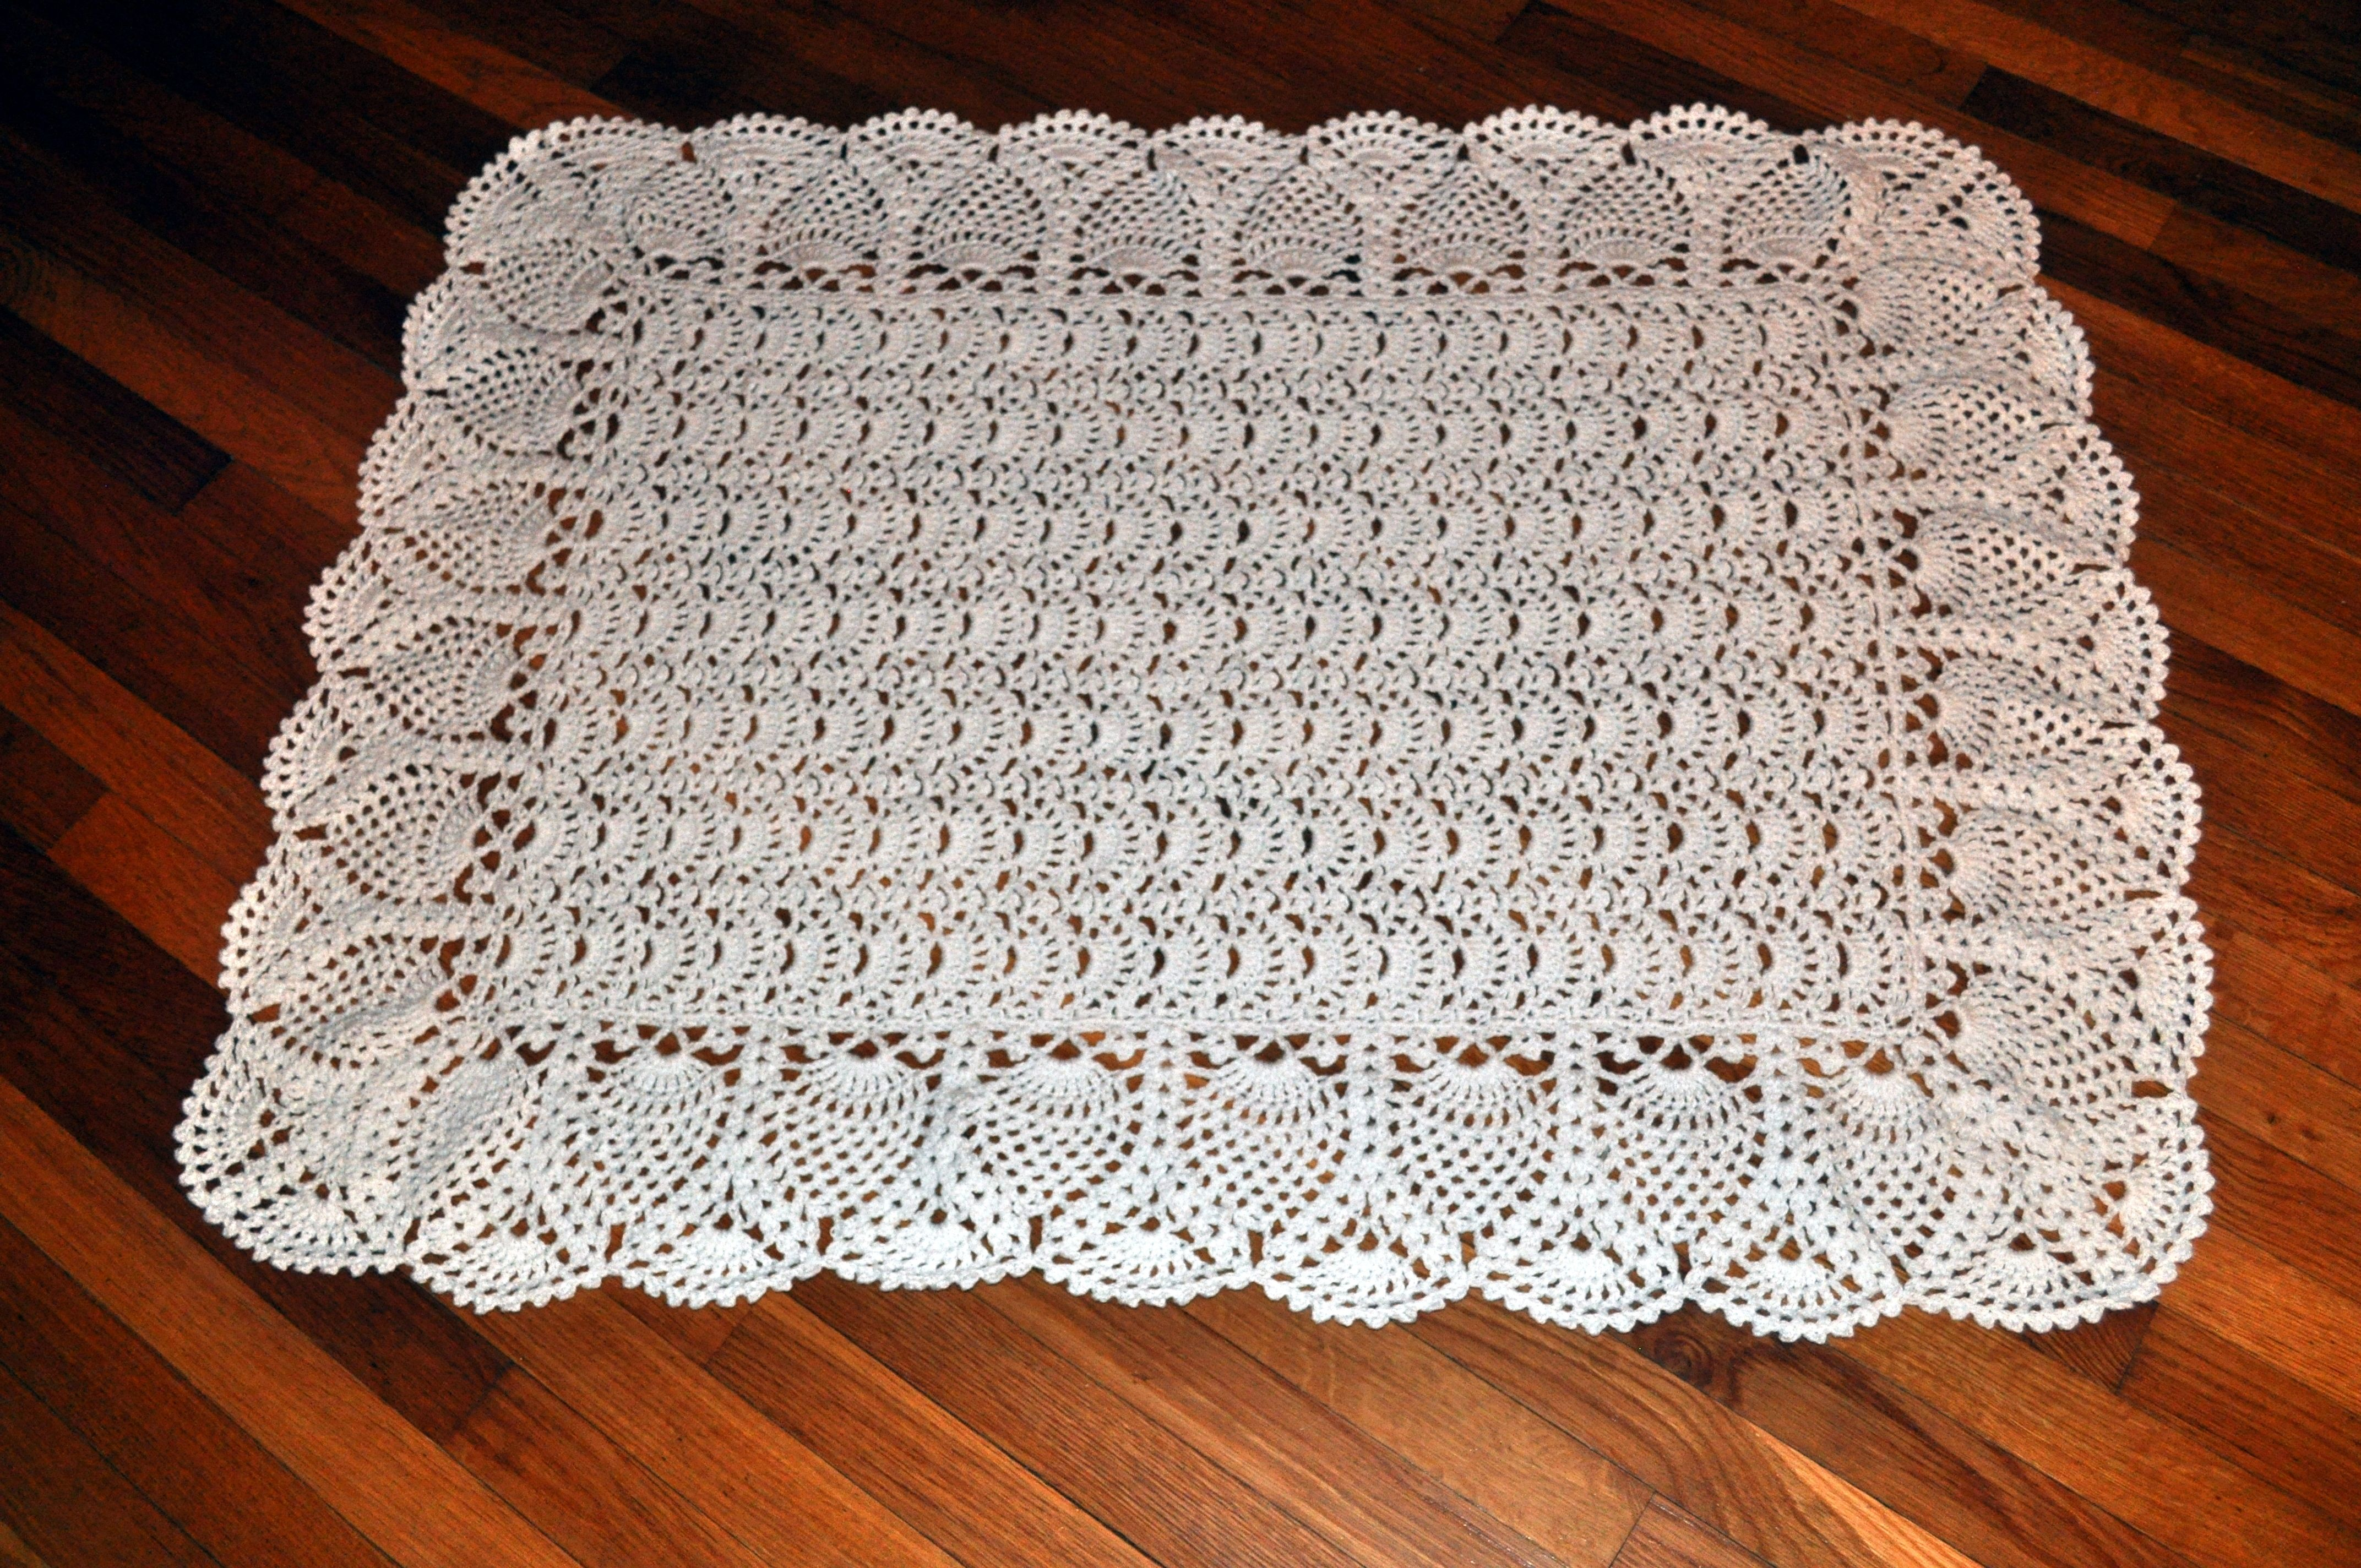 Exquisite Baby Afghan Pattern By Terry Kimbrough Crochet Tashiab Basic Granny Square Stitch Diagram Patterns